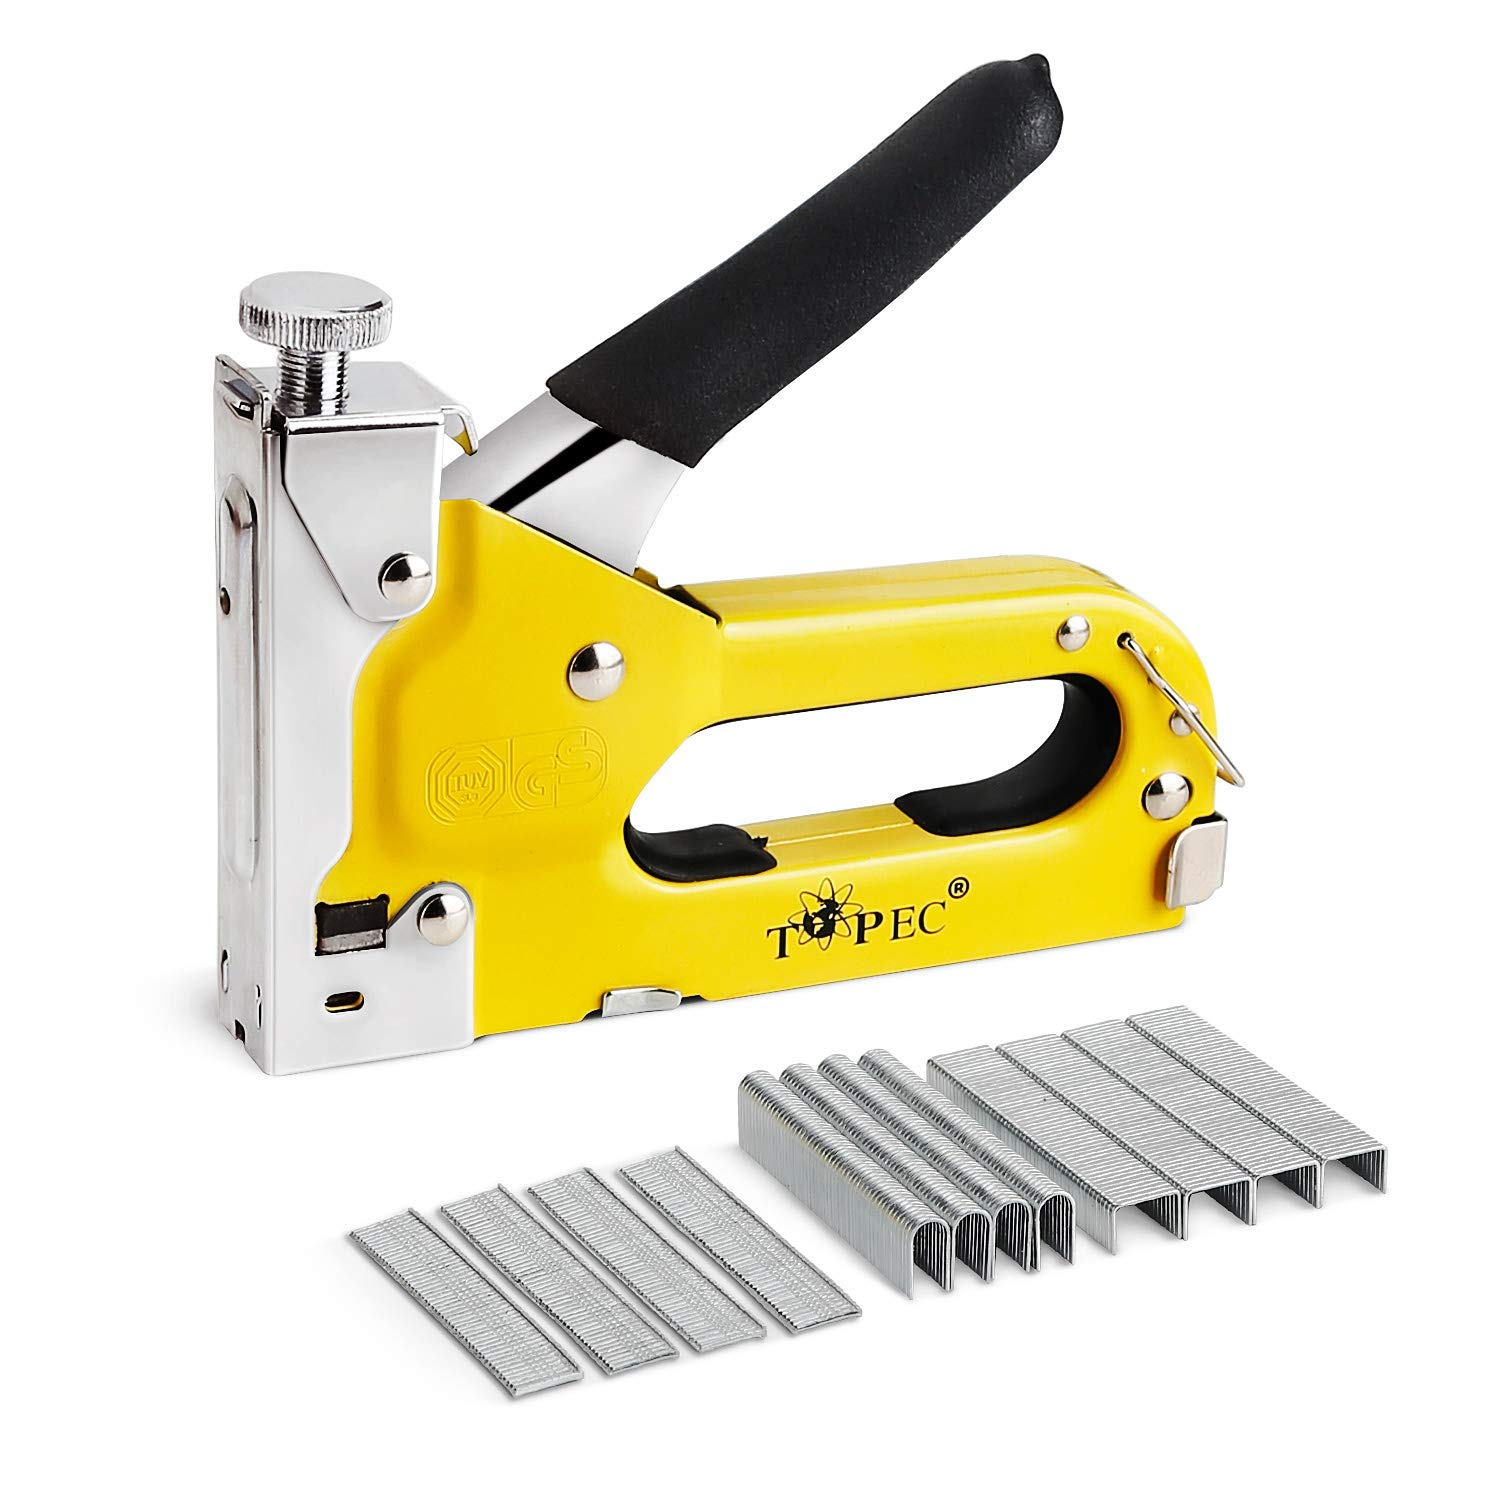 Staple Gun, 3 in 1 Manual Nail Gun with 1800 Staples - Heavy Duty Gun for Upholstery, Fixing Material, Decoration, Carpentry, Furniture by Topec (Image #1)